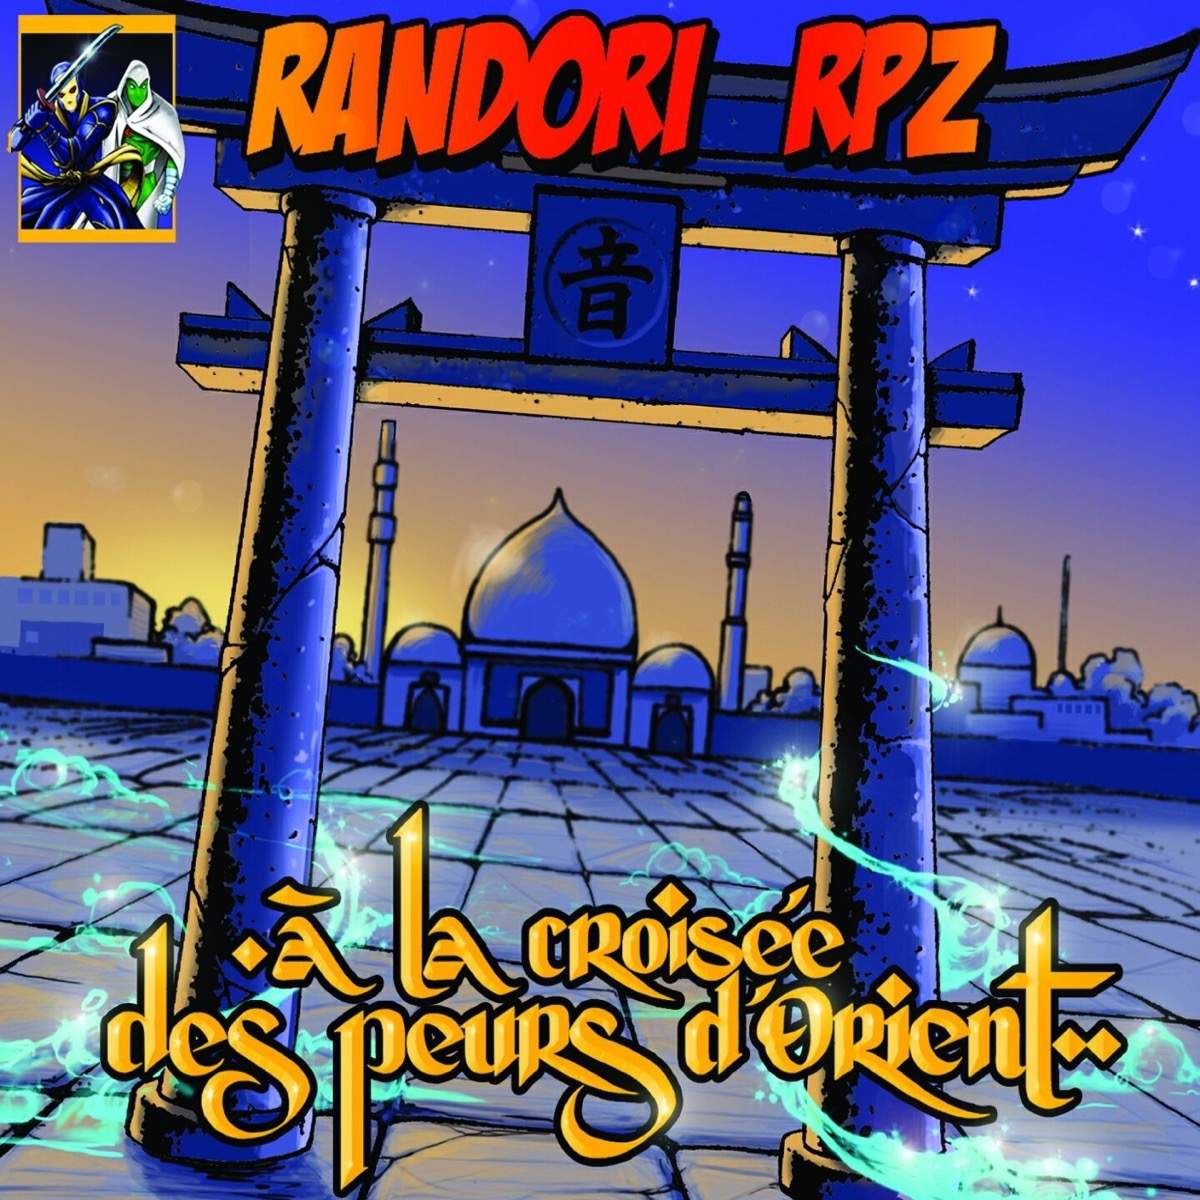 Randori & RPZ A La Croisée Des Peurs D'orient album ecoute telecharge download stream streaming son mp3 clip parole lyrics rap hiphop hip hop